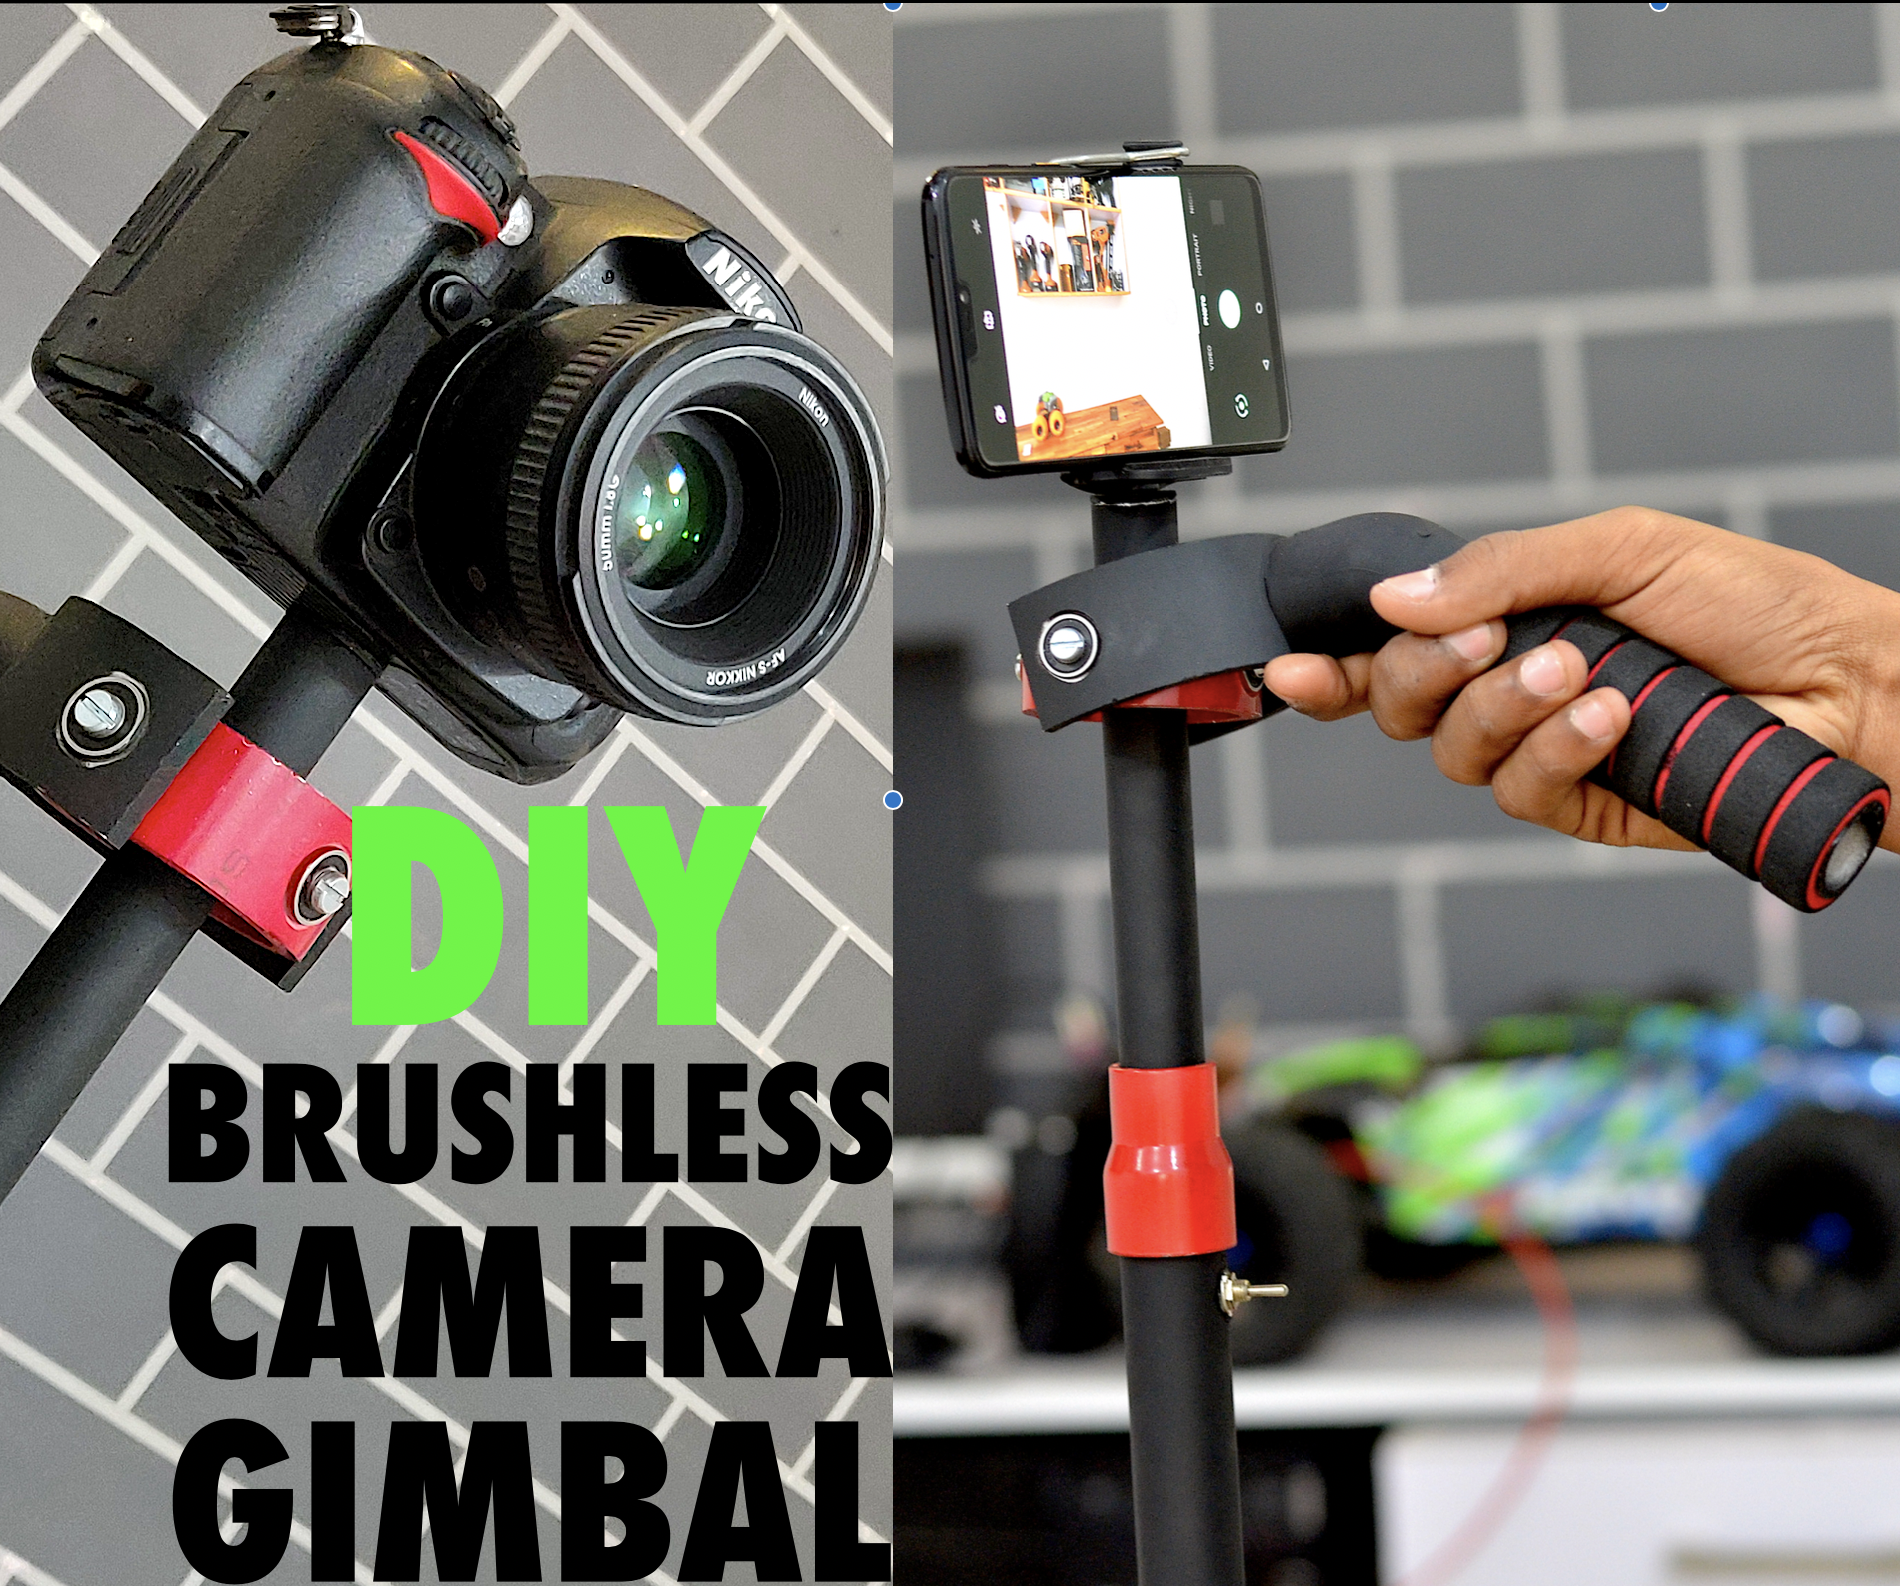 DIY Brushless Gimbal